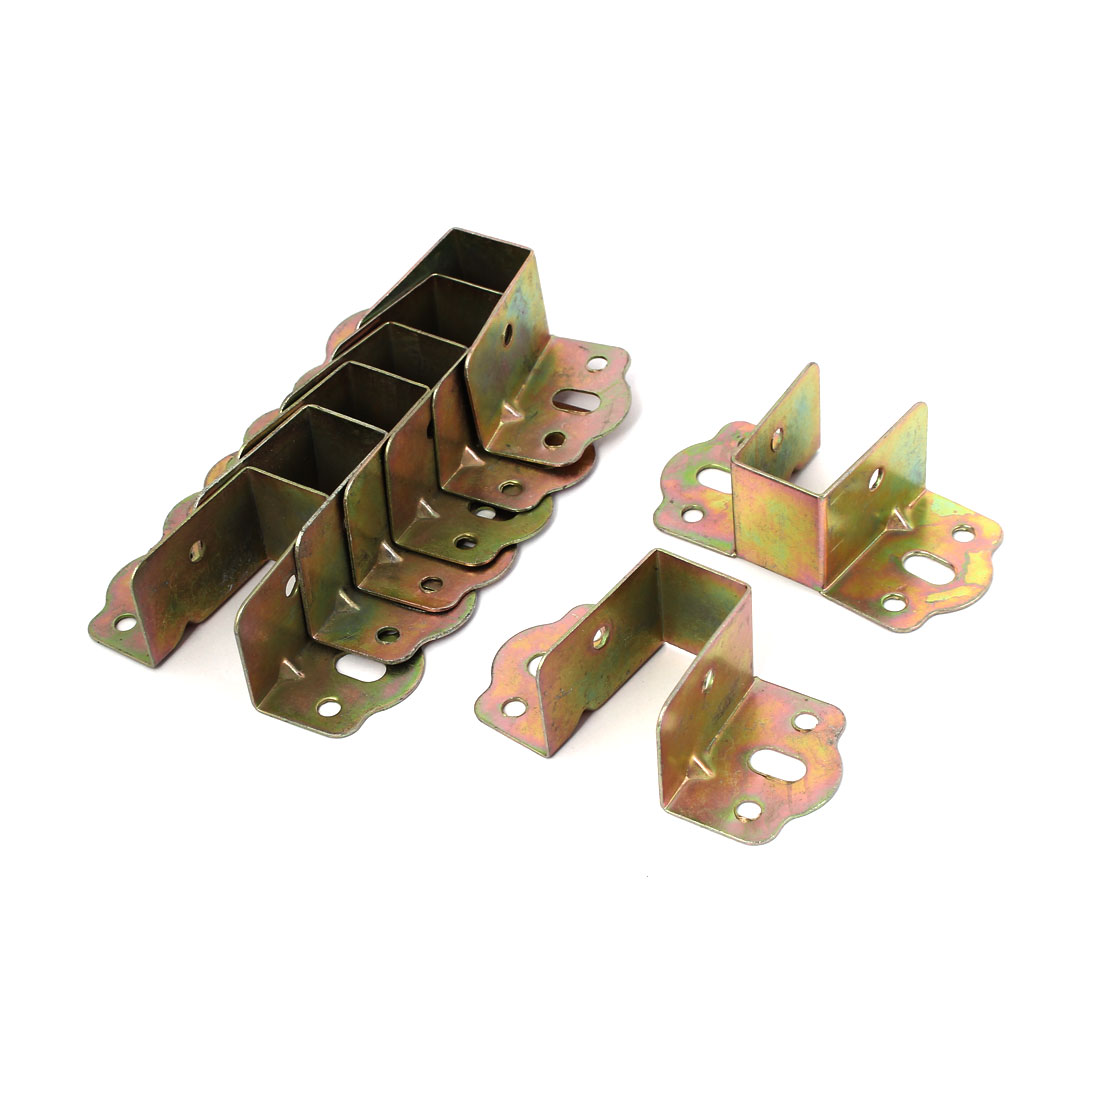 68mm x 40mm x 28mm 8 Holes Metal Bed Angle Brackets Hardware Bronze Tone 8 Pcs